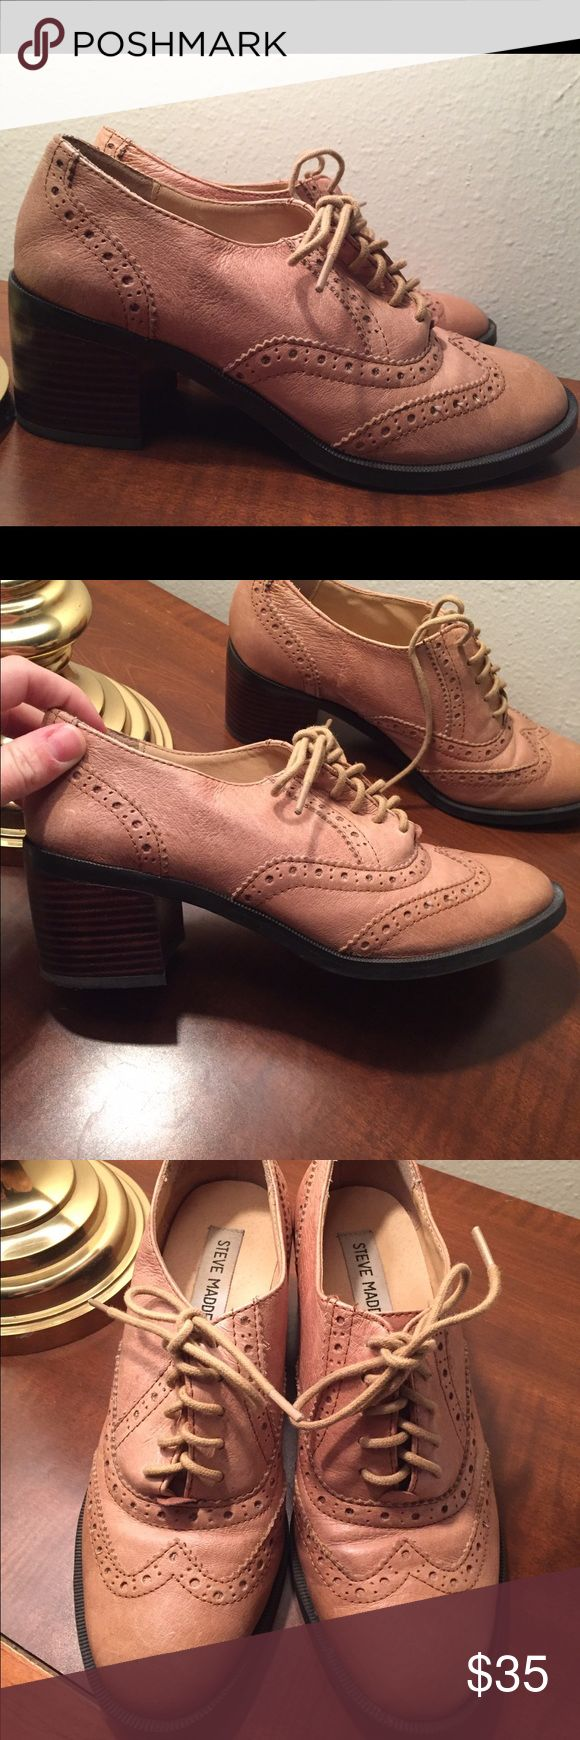 Steven madden shoes Steve Madden Casual shoe with a heel- in excellent condition, only worn a few times. Steve Madden Shoes Flats & Loafers